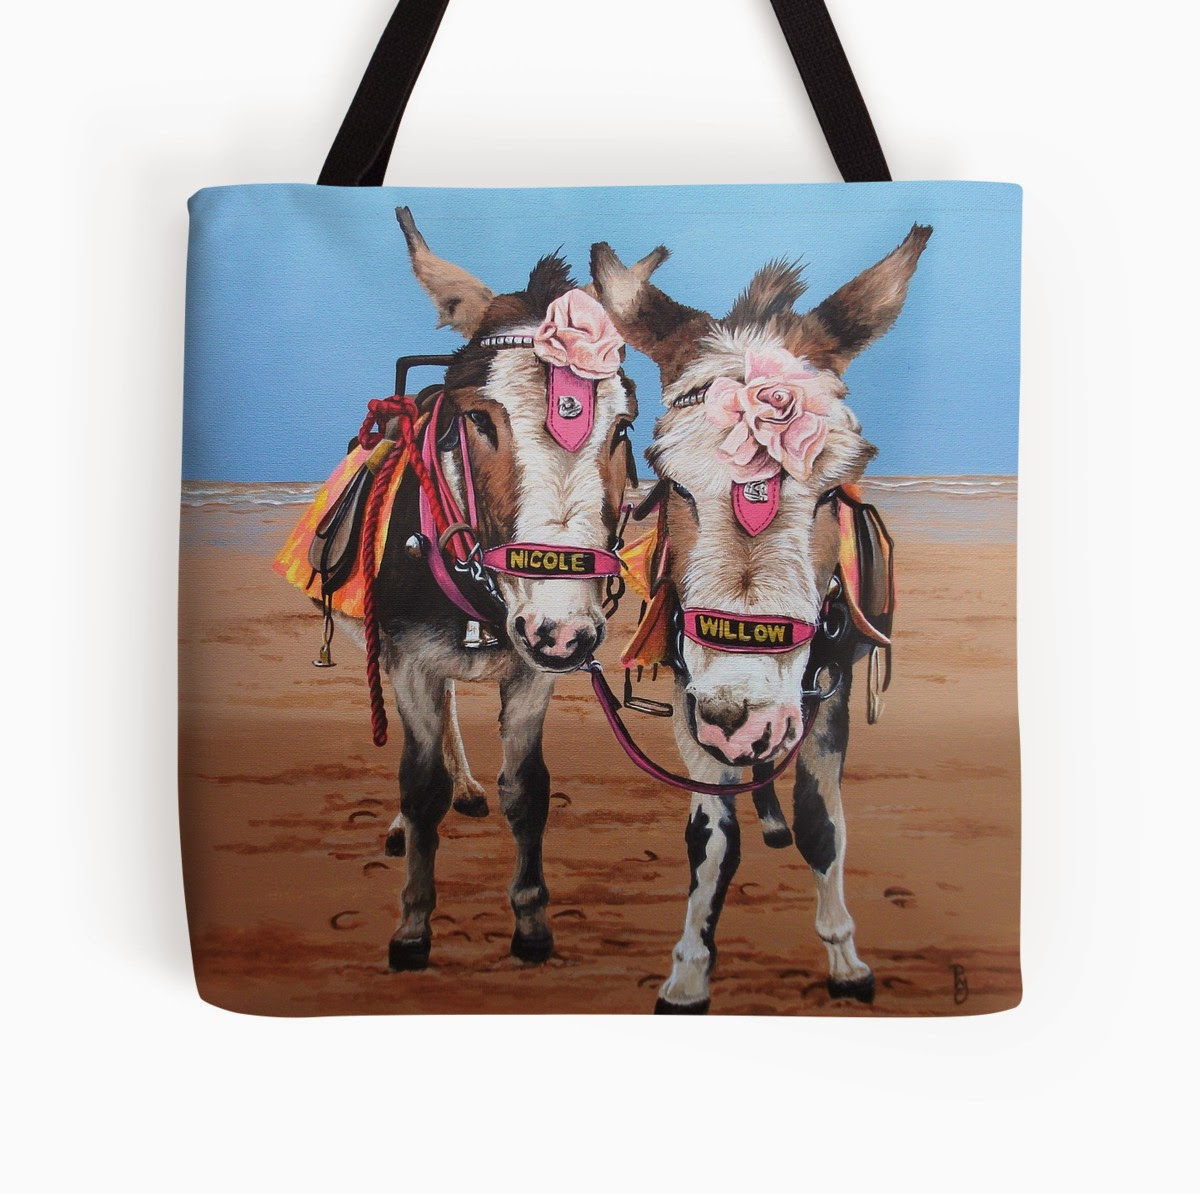 NEW! Tote bags